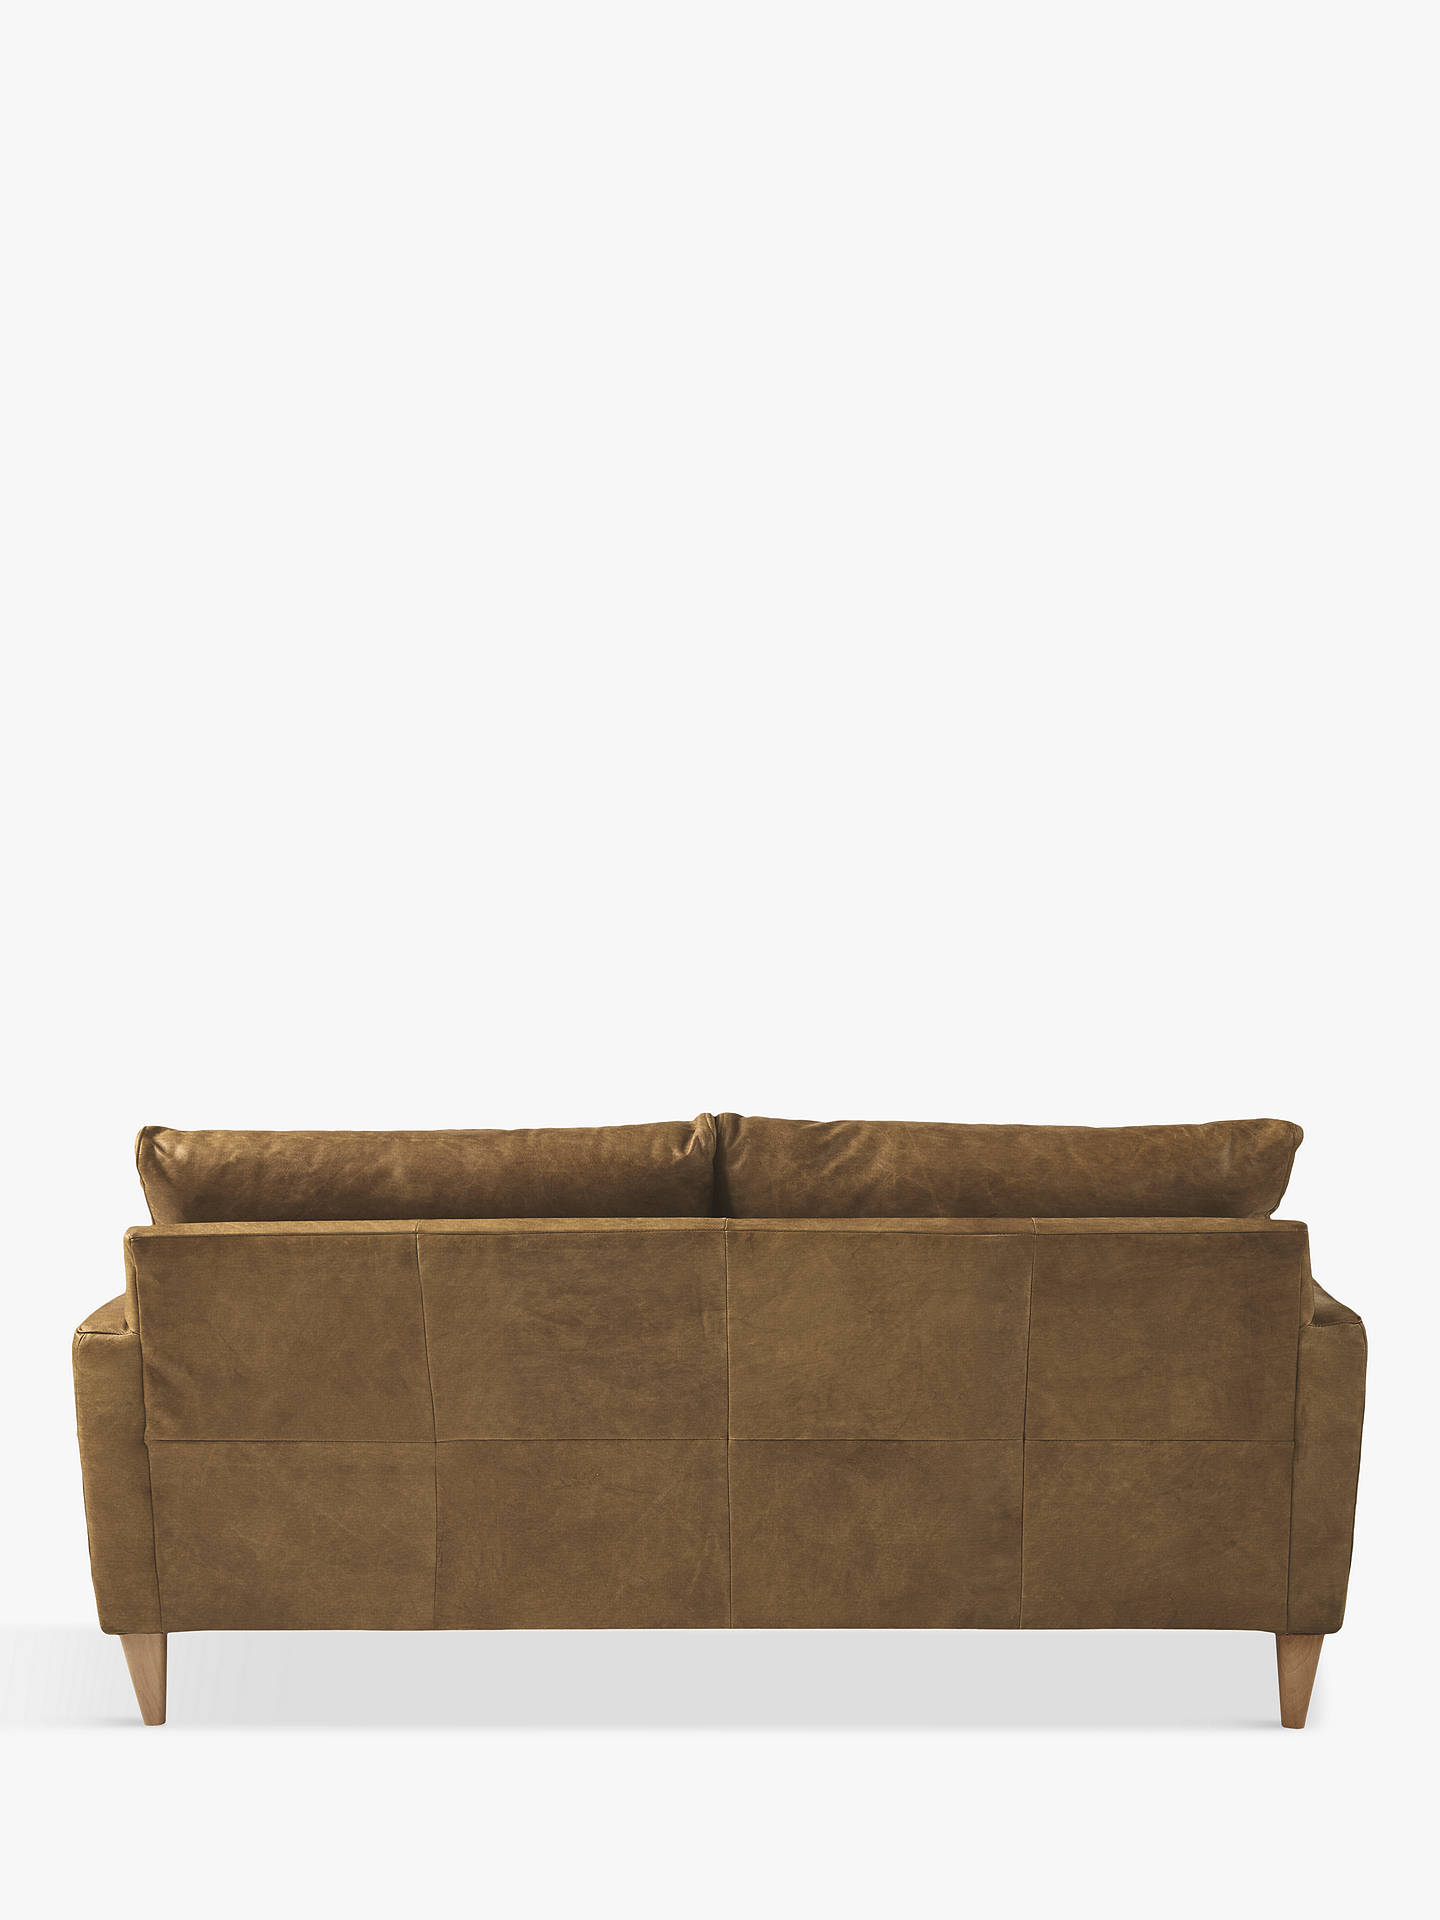 John Lewis Partners Bailey Small 2 Seater Leather Sofa Er Cuccino Online At Johnlewis